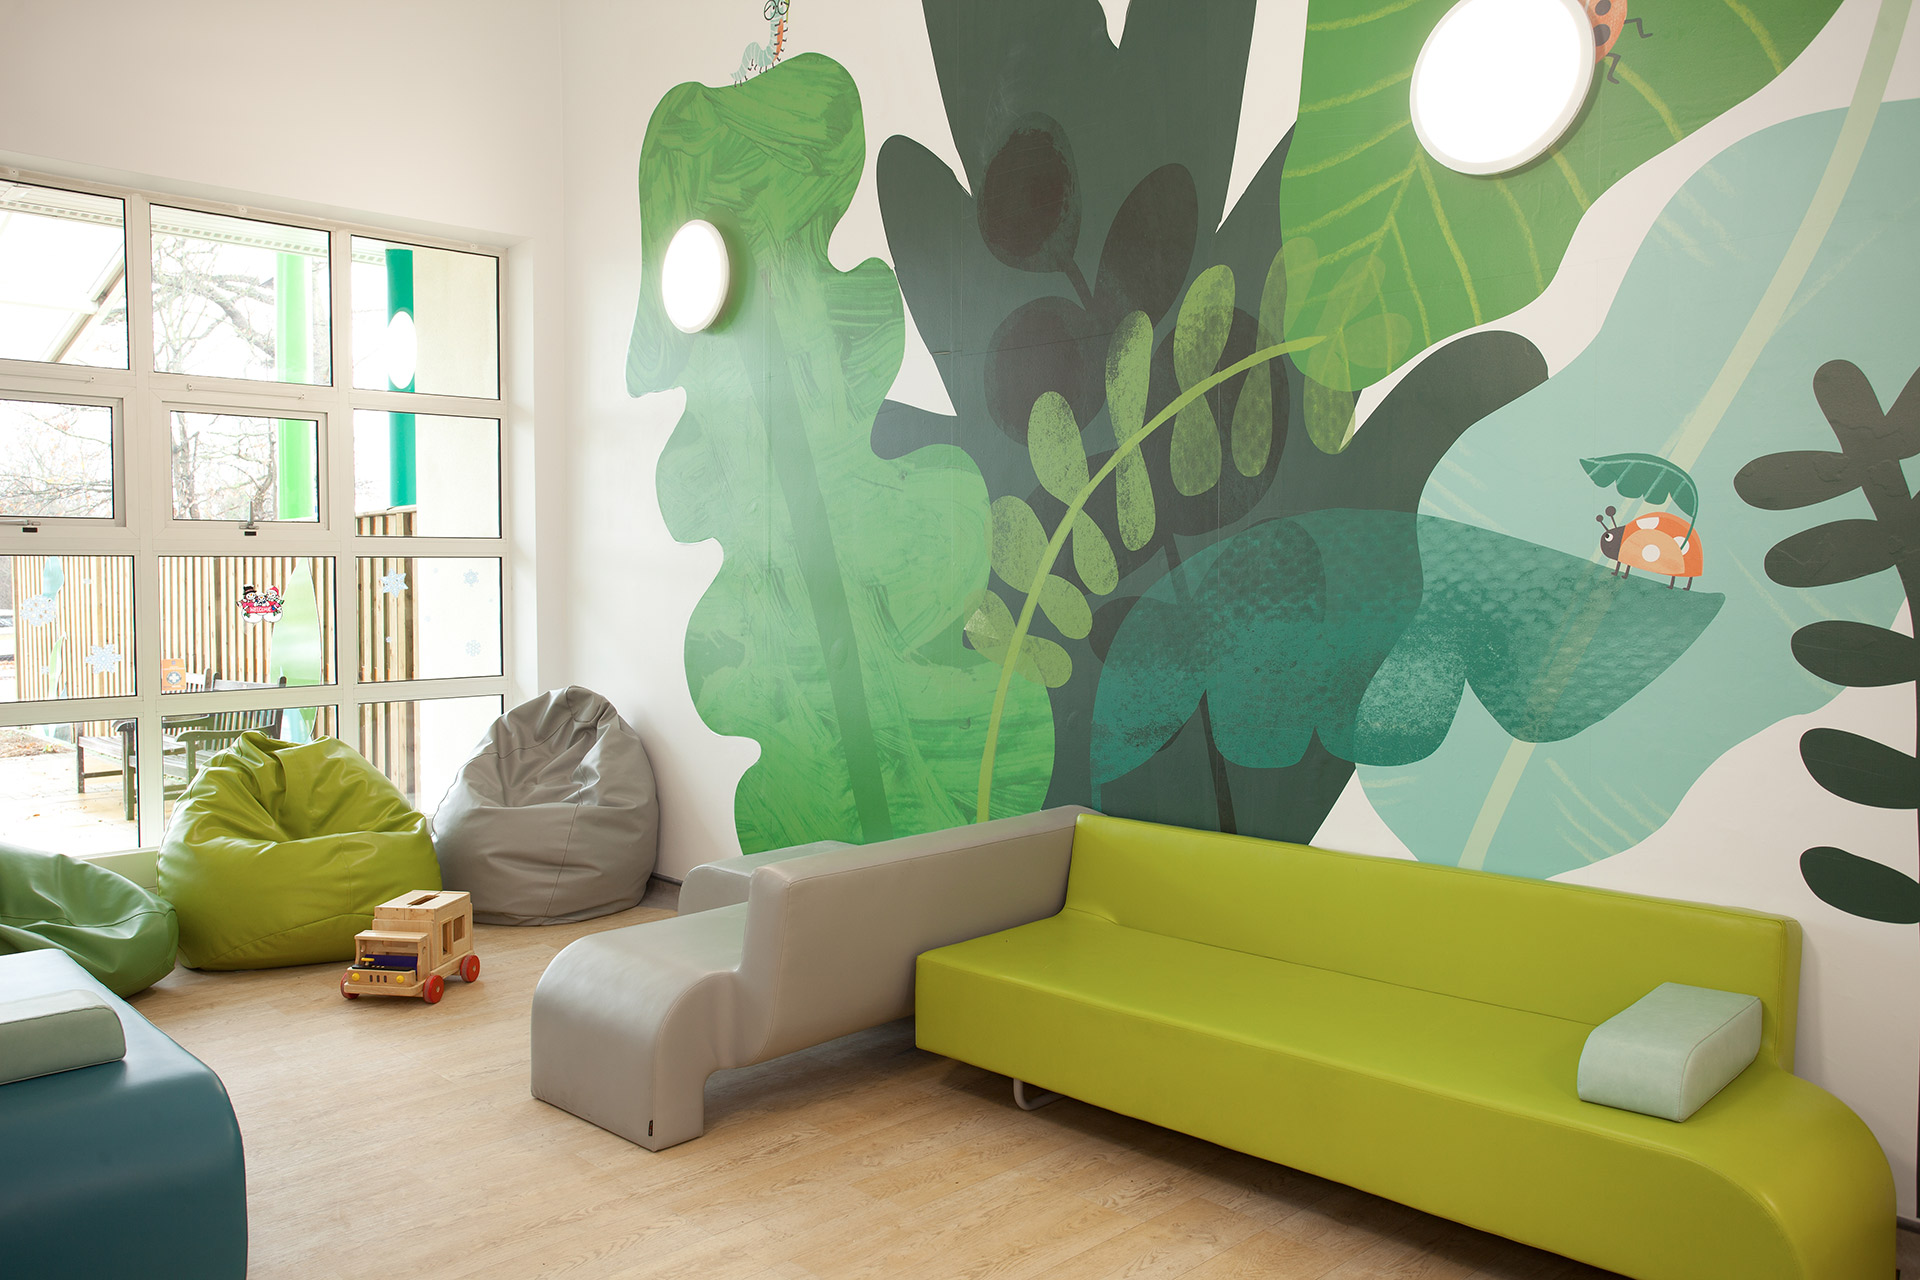 wall graphics designed by Boex in collaboration with Rose Darling Design